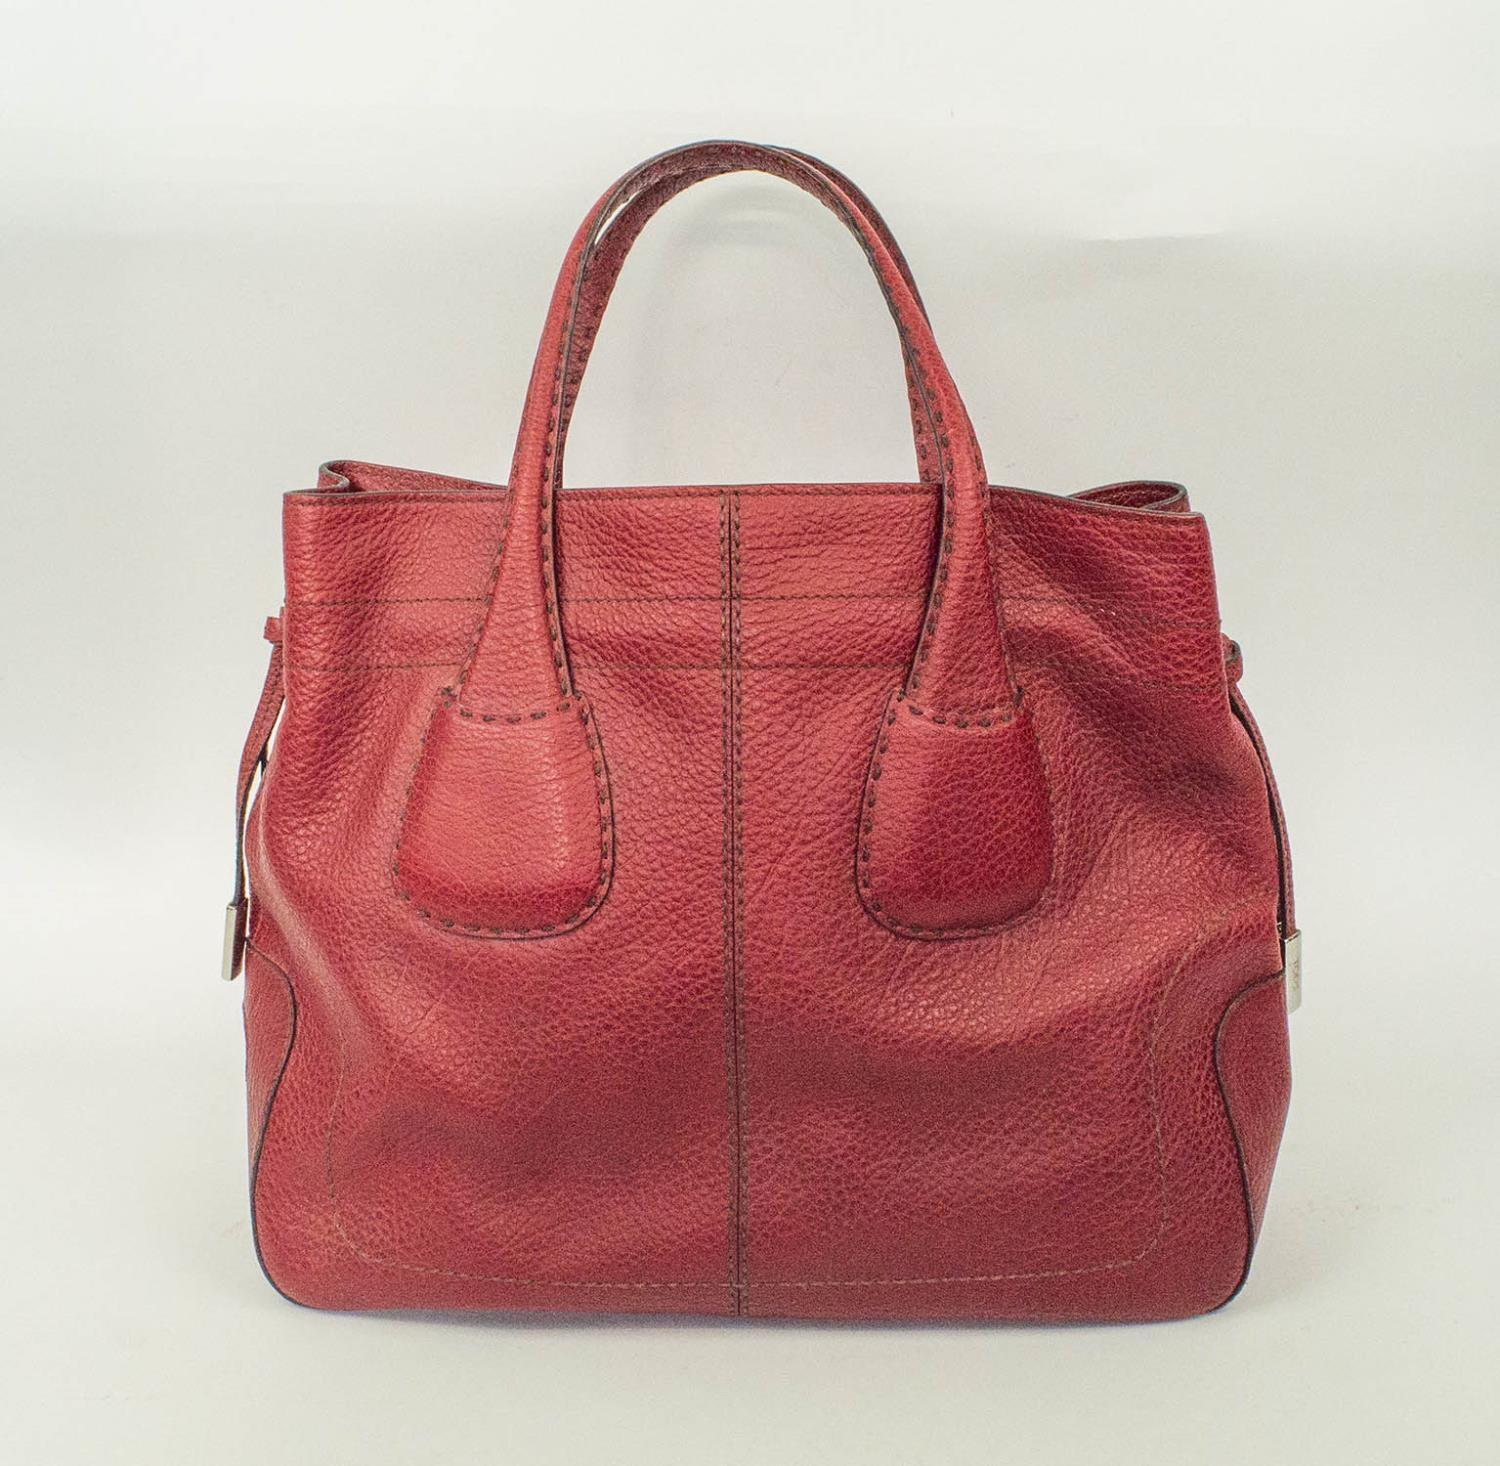 TOD'S DRAWSTRING TOTE BAG, leather with optional tightening drawstring closure, silver tone bottom - Image 2 of 8